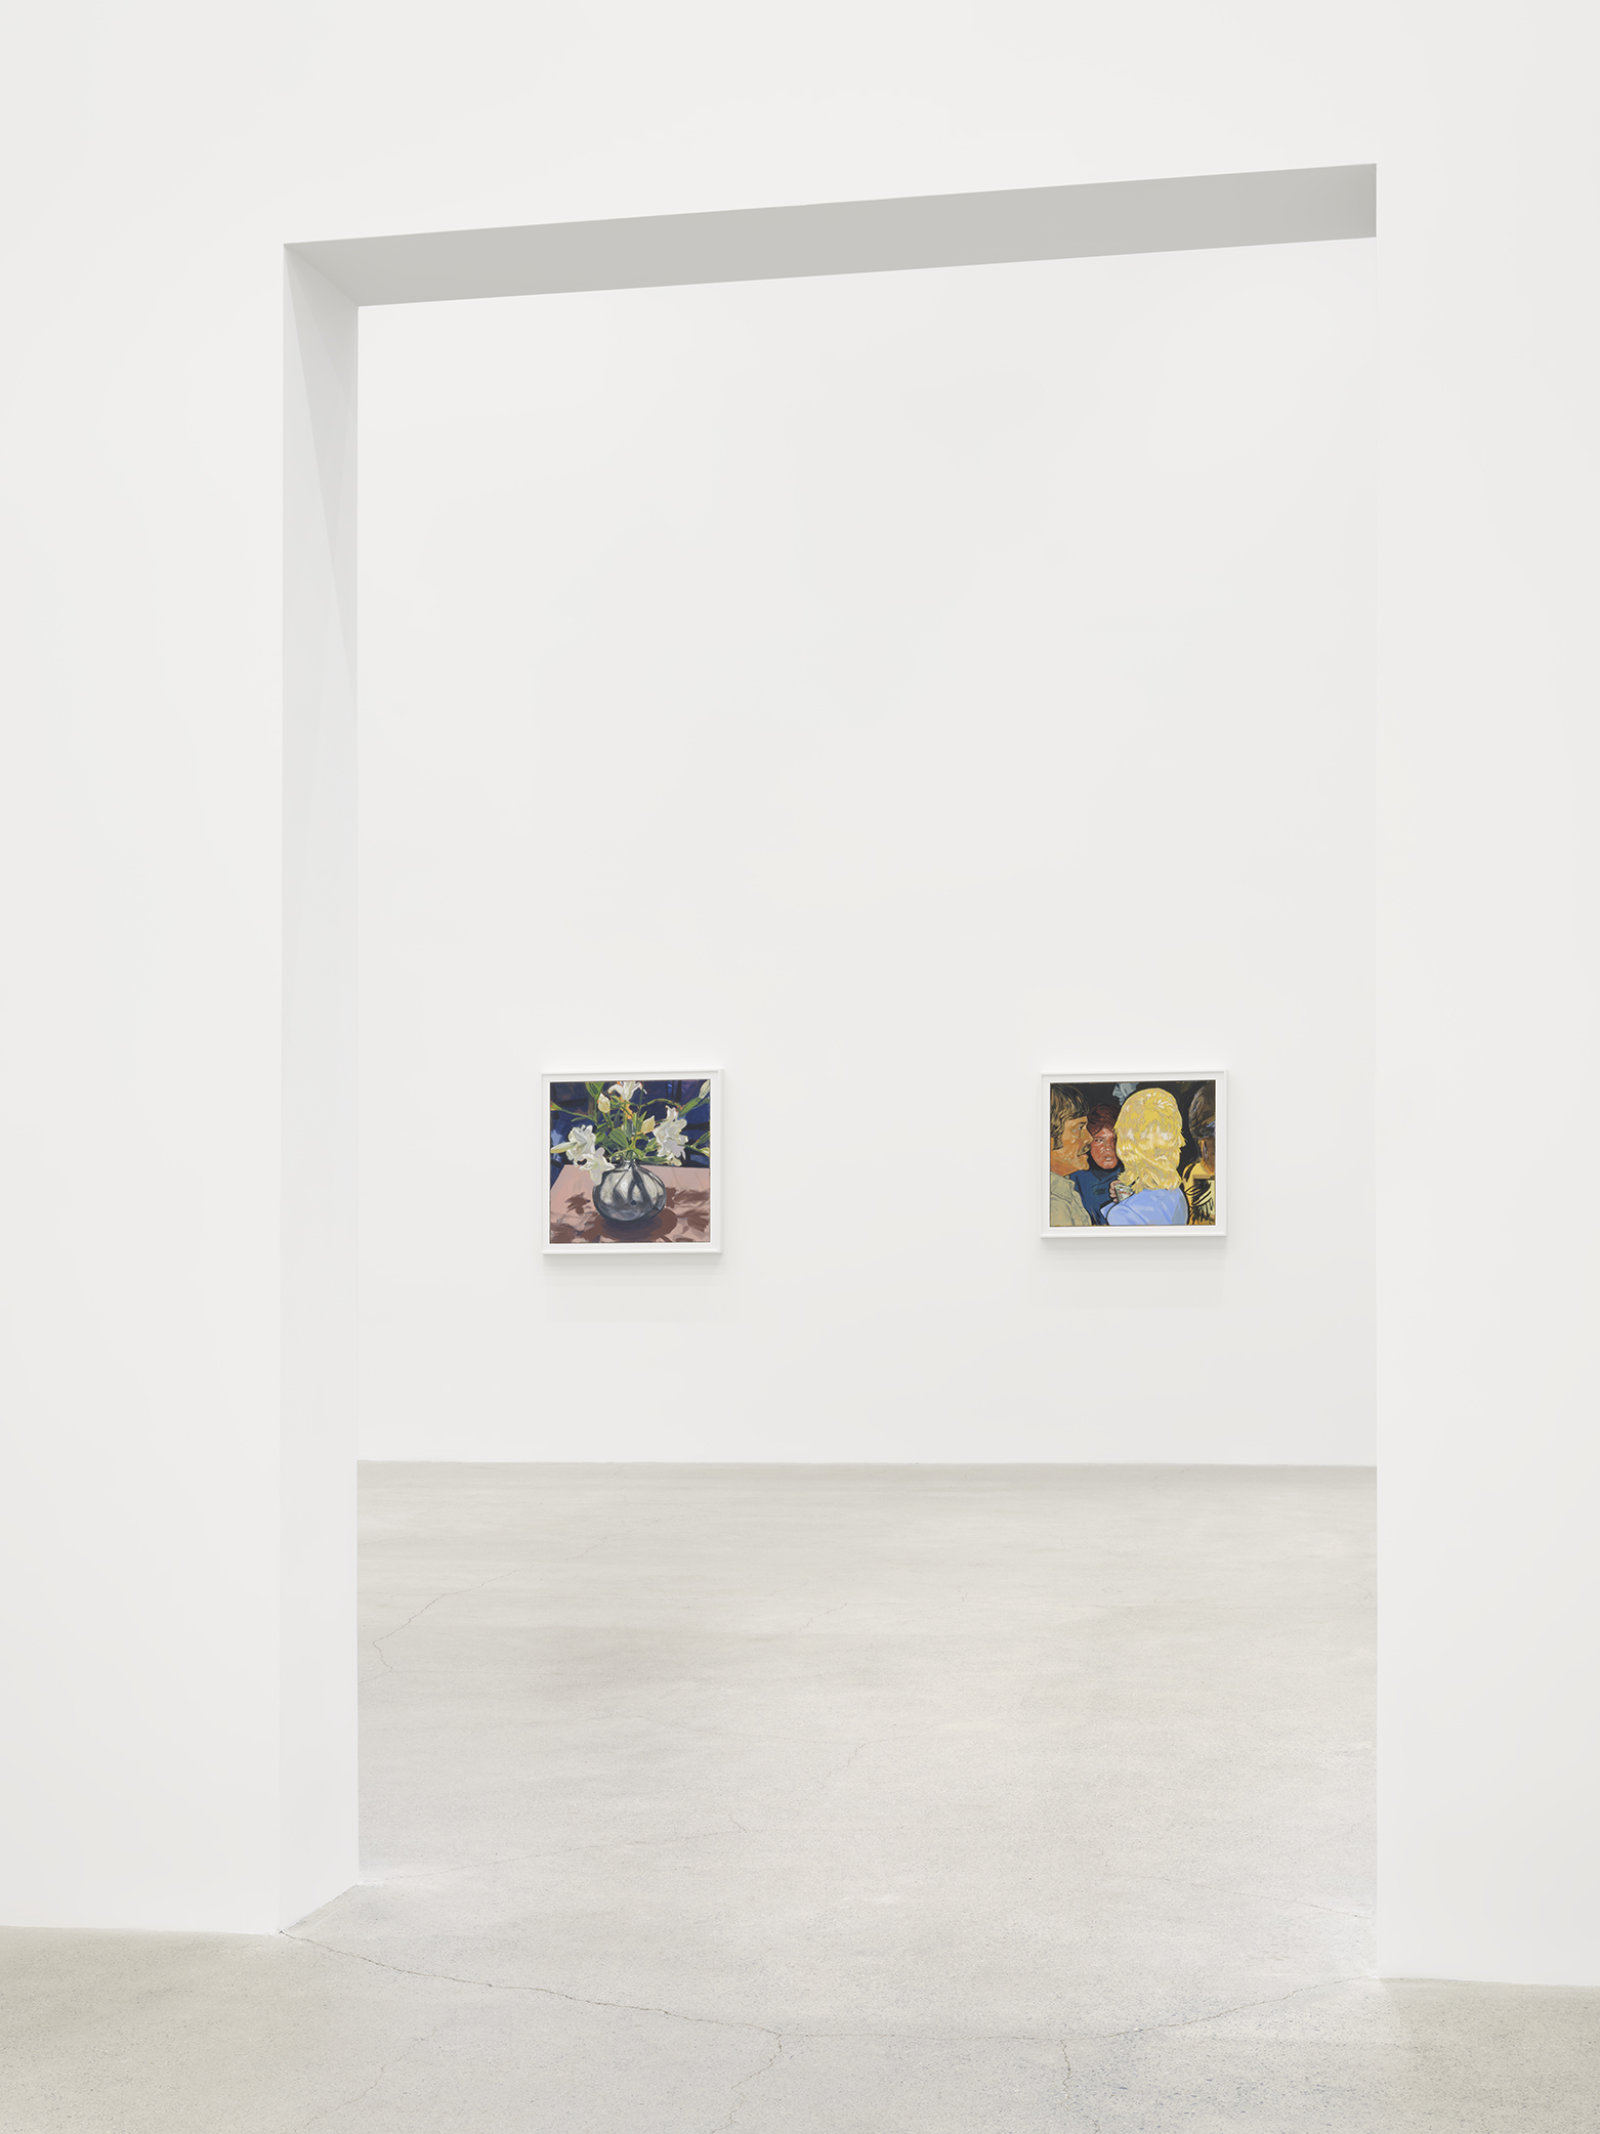 Damian Moppett, installation view, Vignettes, Catriona Jeffries, Vancouver, 2021 by Damian Moppett